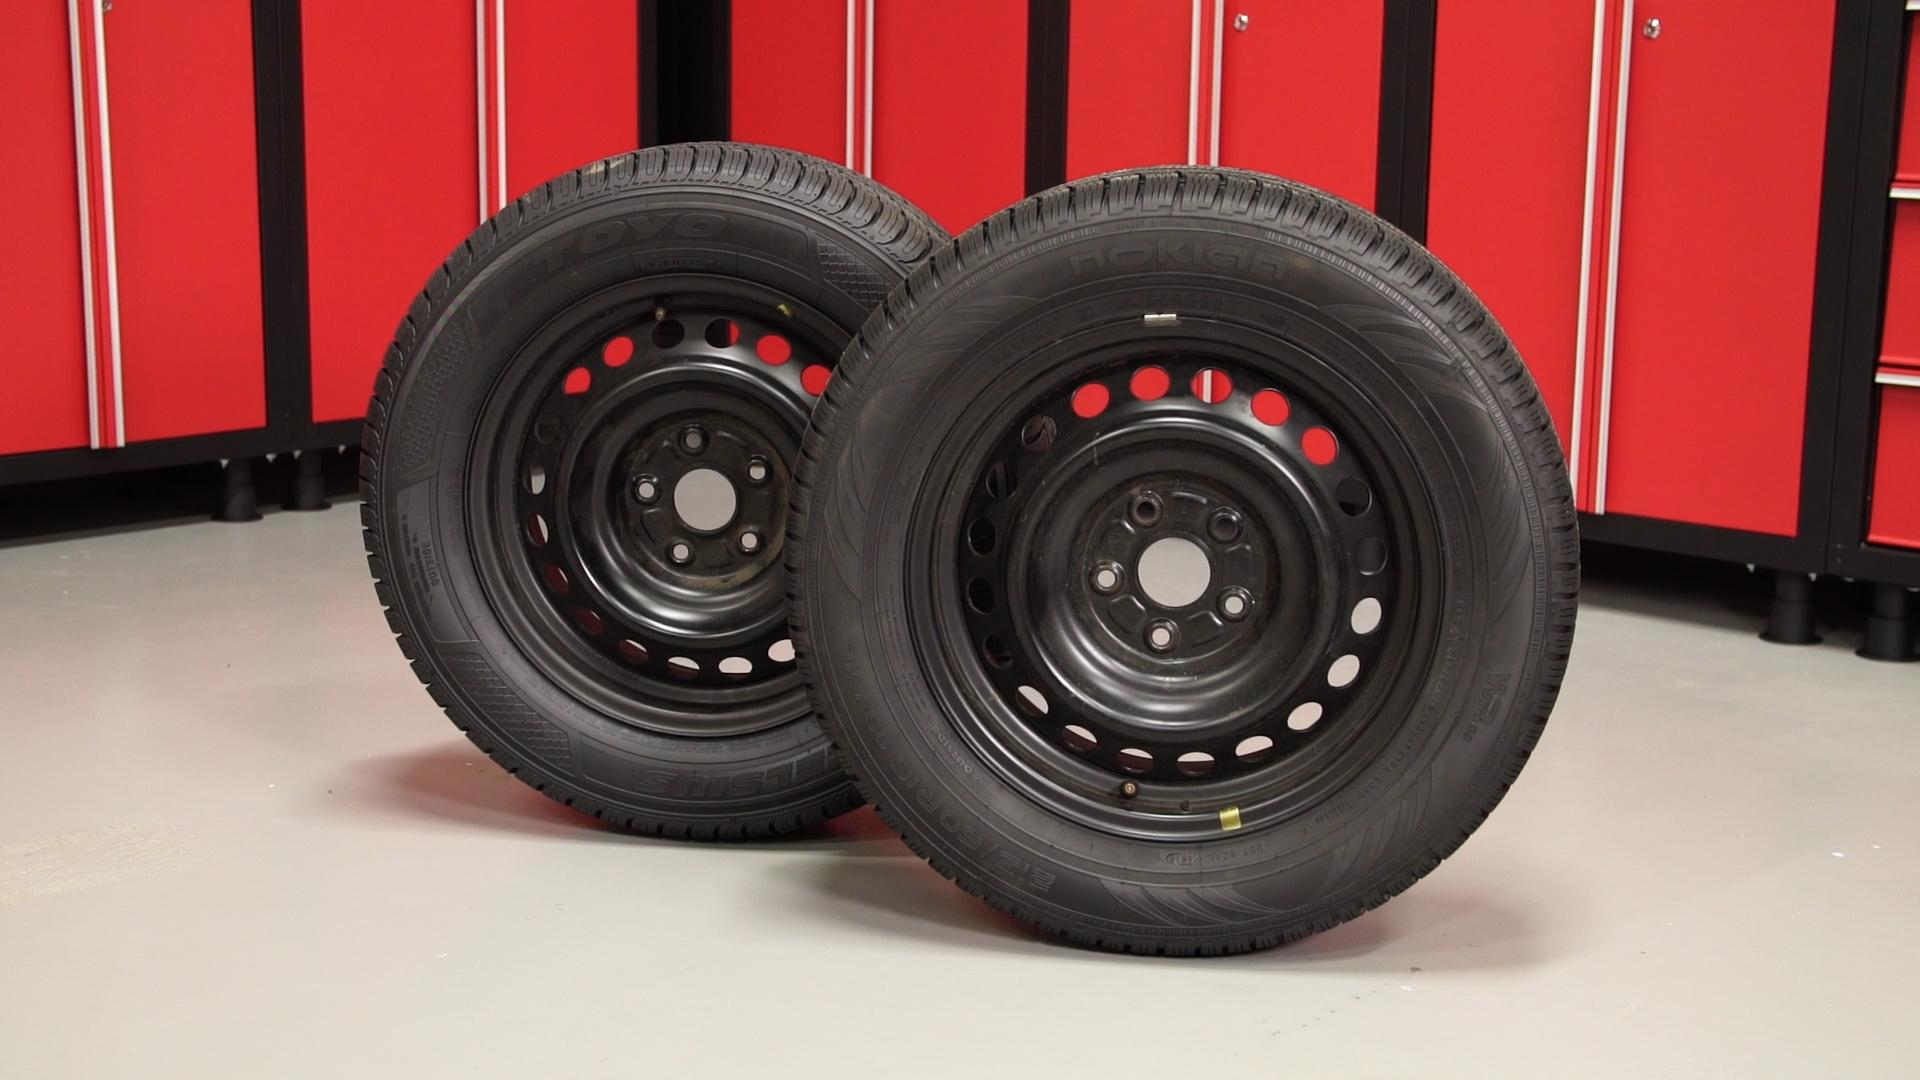 Tire fitting for trucks: overview, specifications, types and reviews